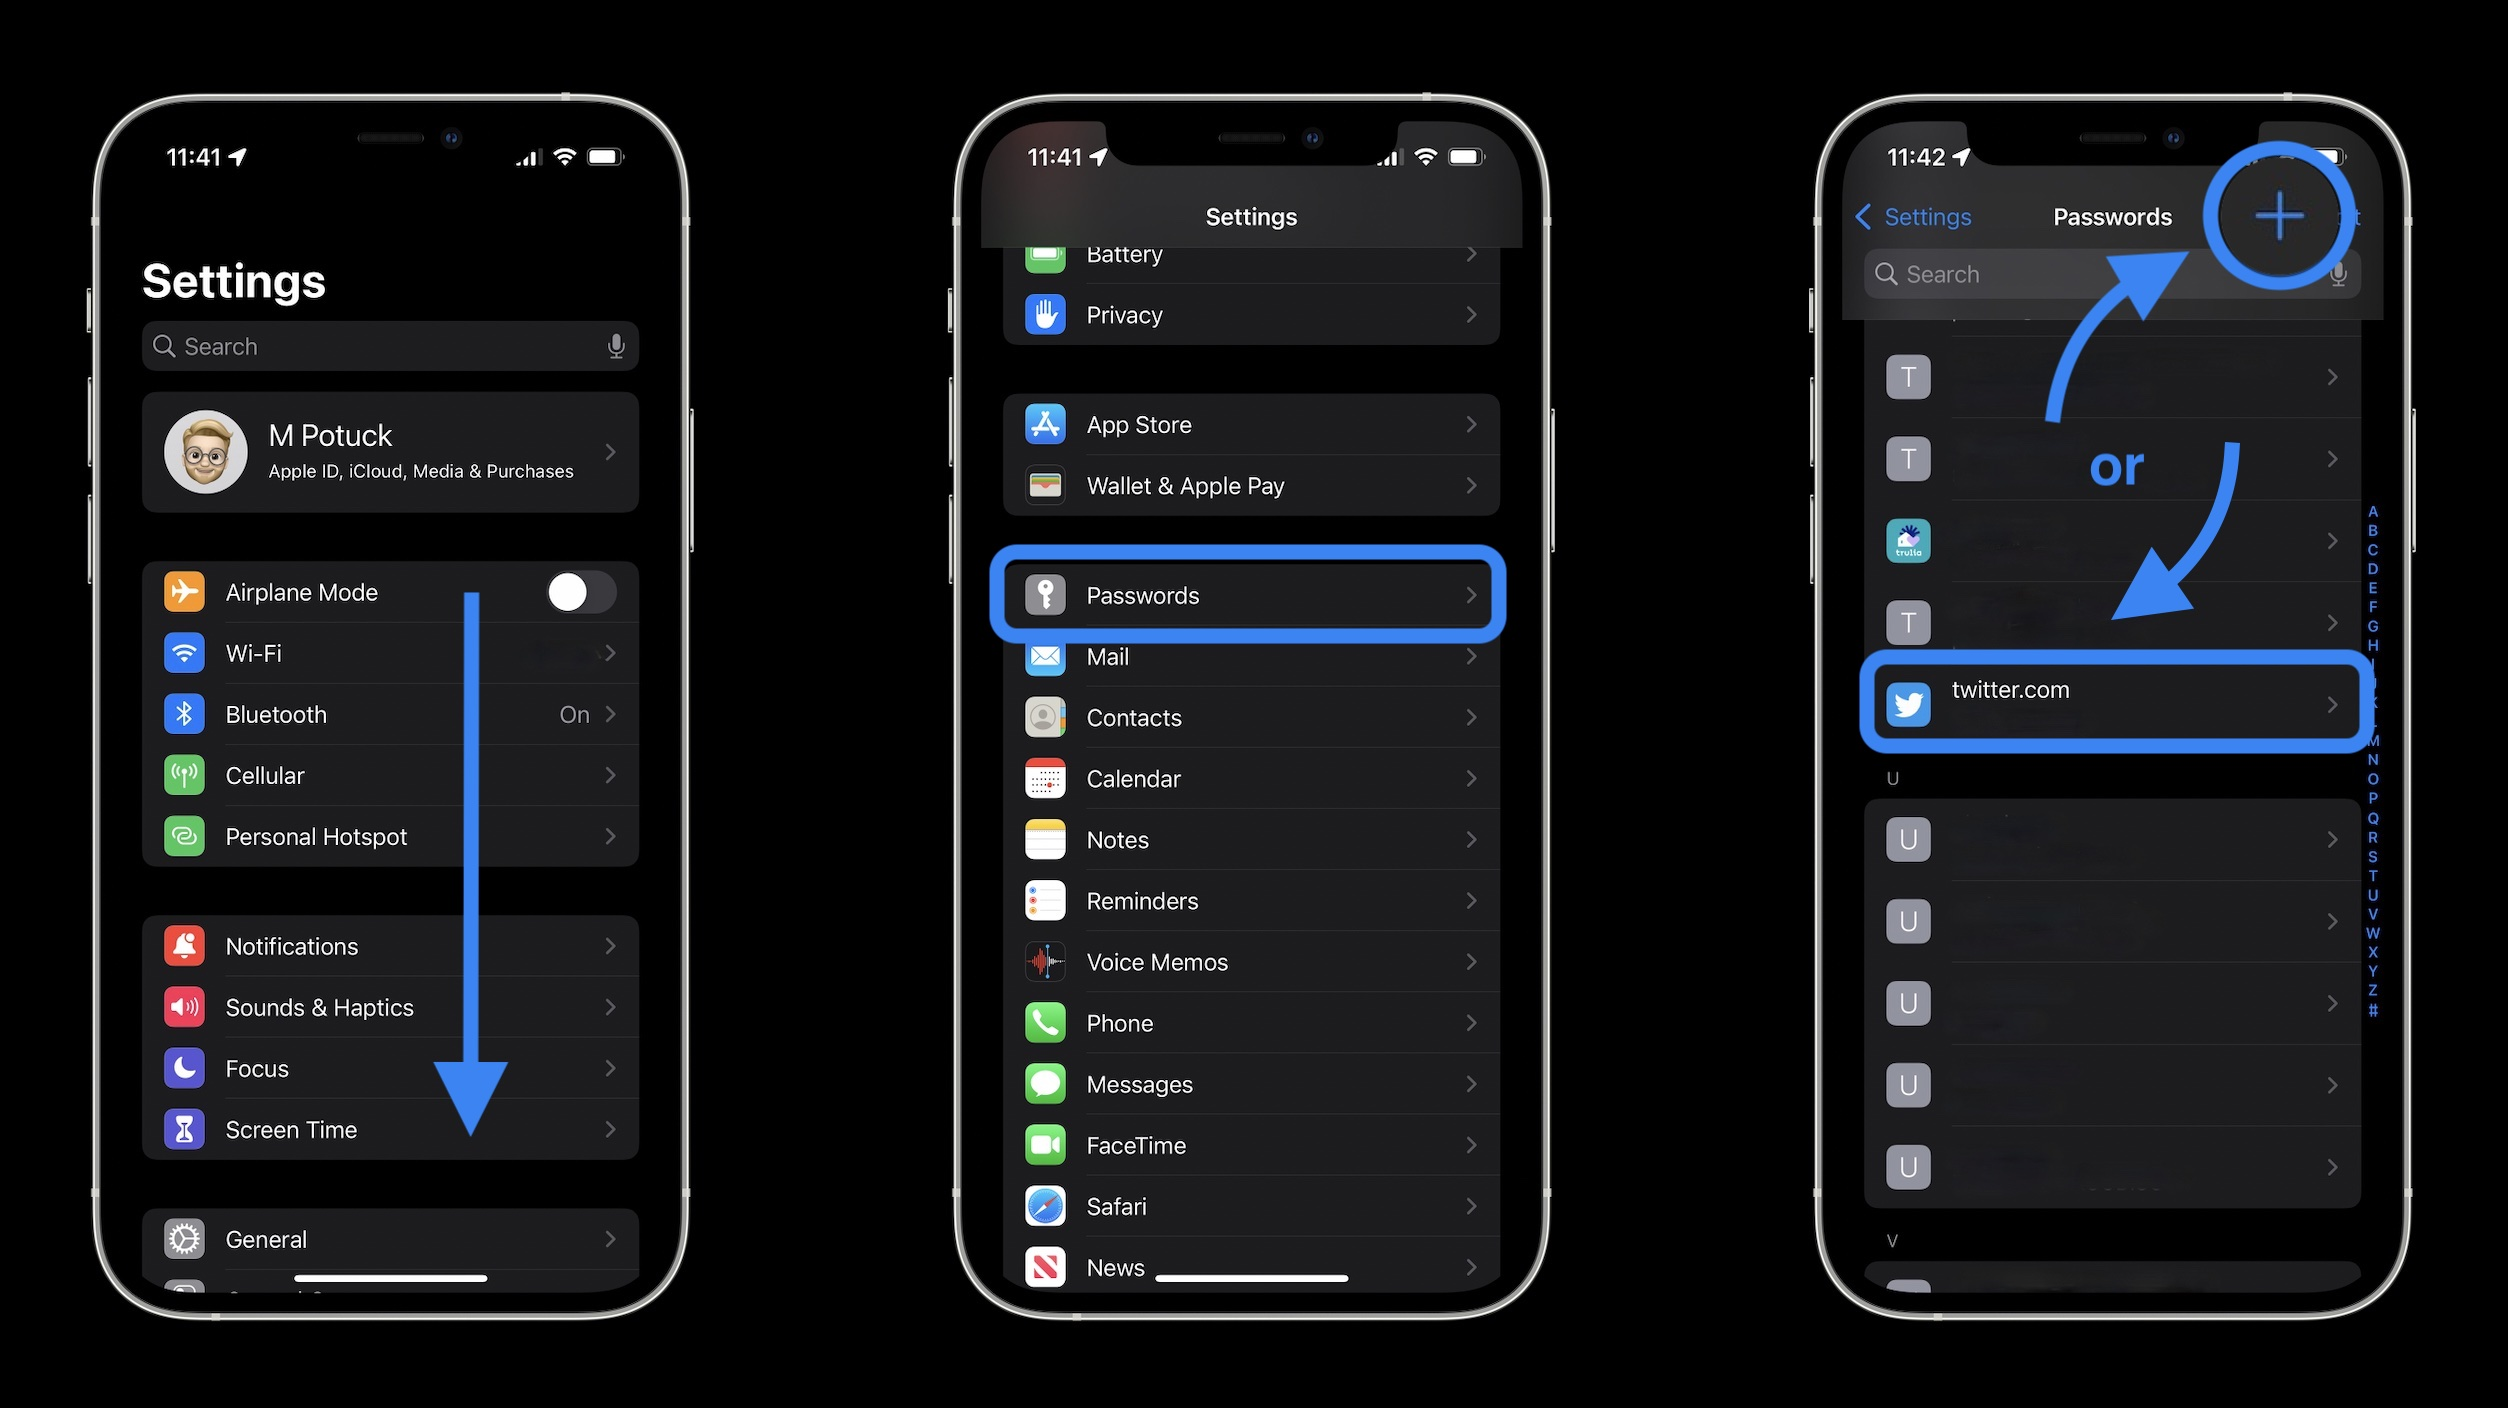 How to set up iOS 15 2FA code generator and autofill - iOS Settings app > Passwords > Create new or select existing login